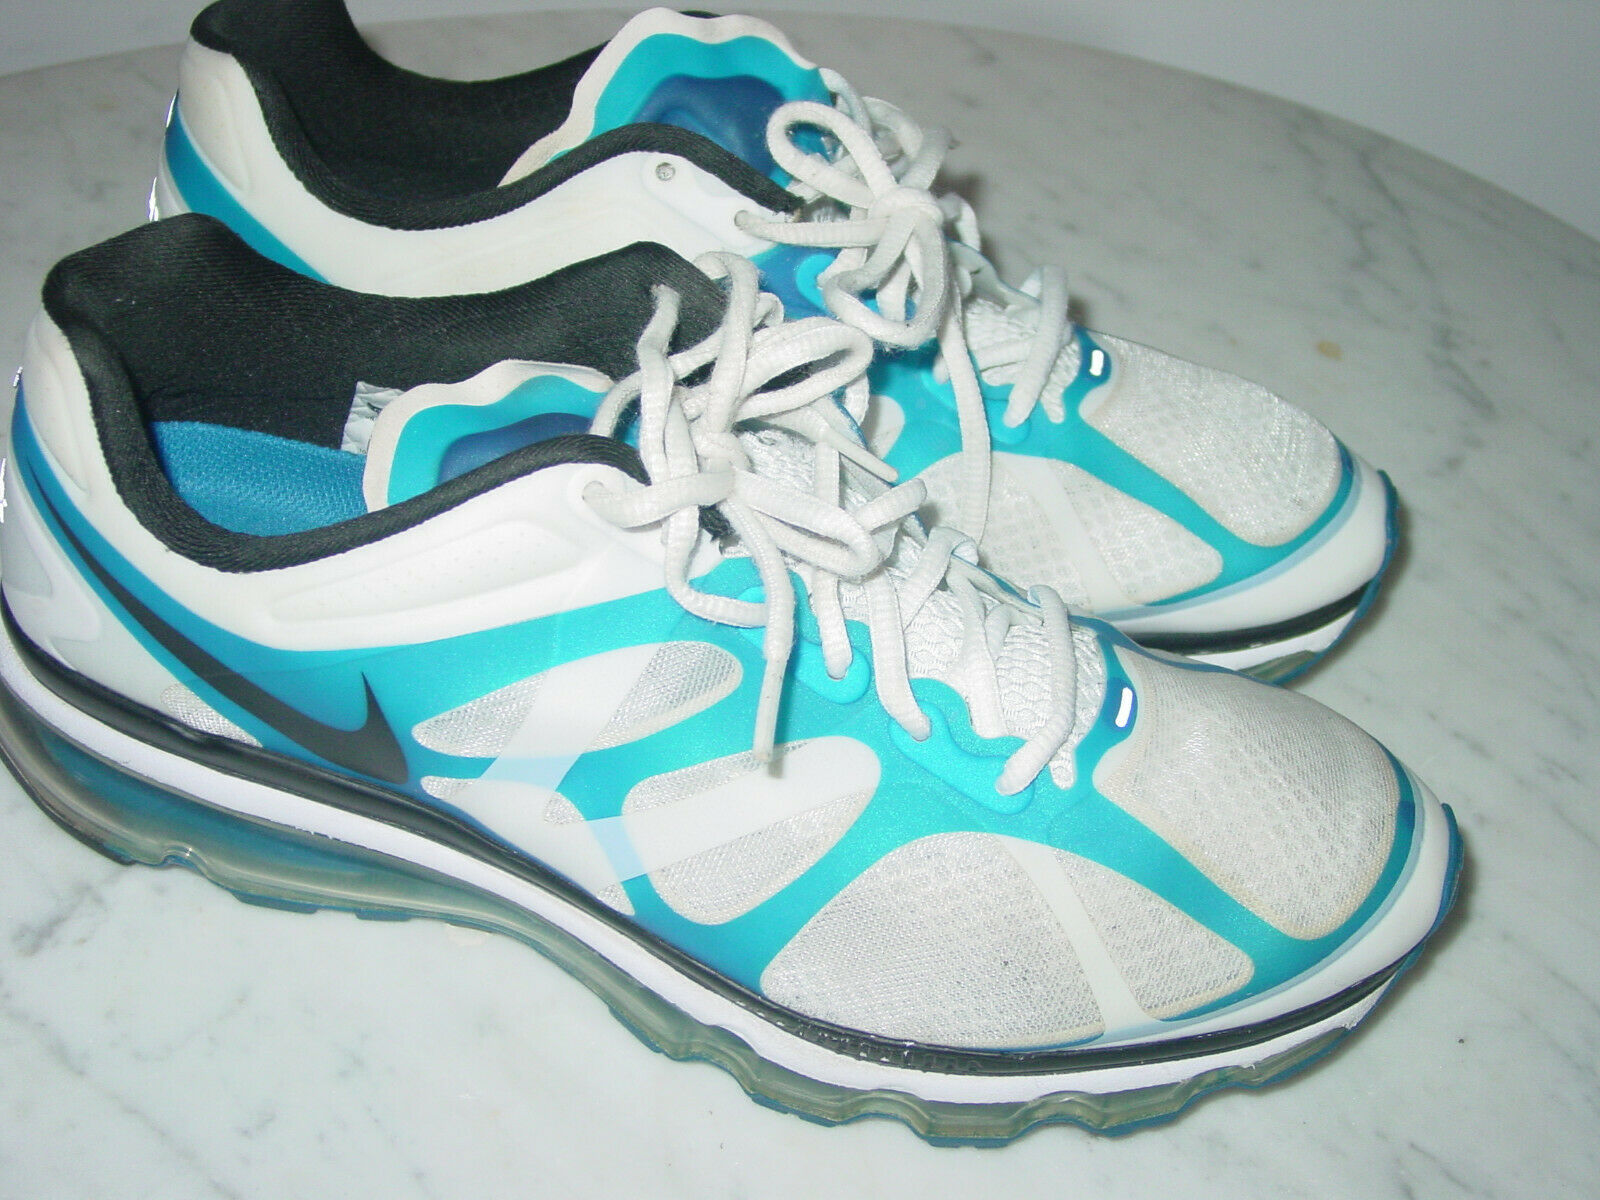 best service 02184 df72e 2011 Nike Air Max+ 2012 White Black bluee Spark Running shoes Size 11